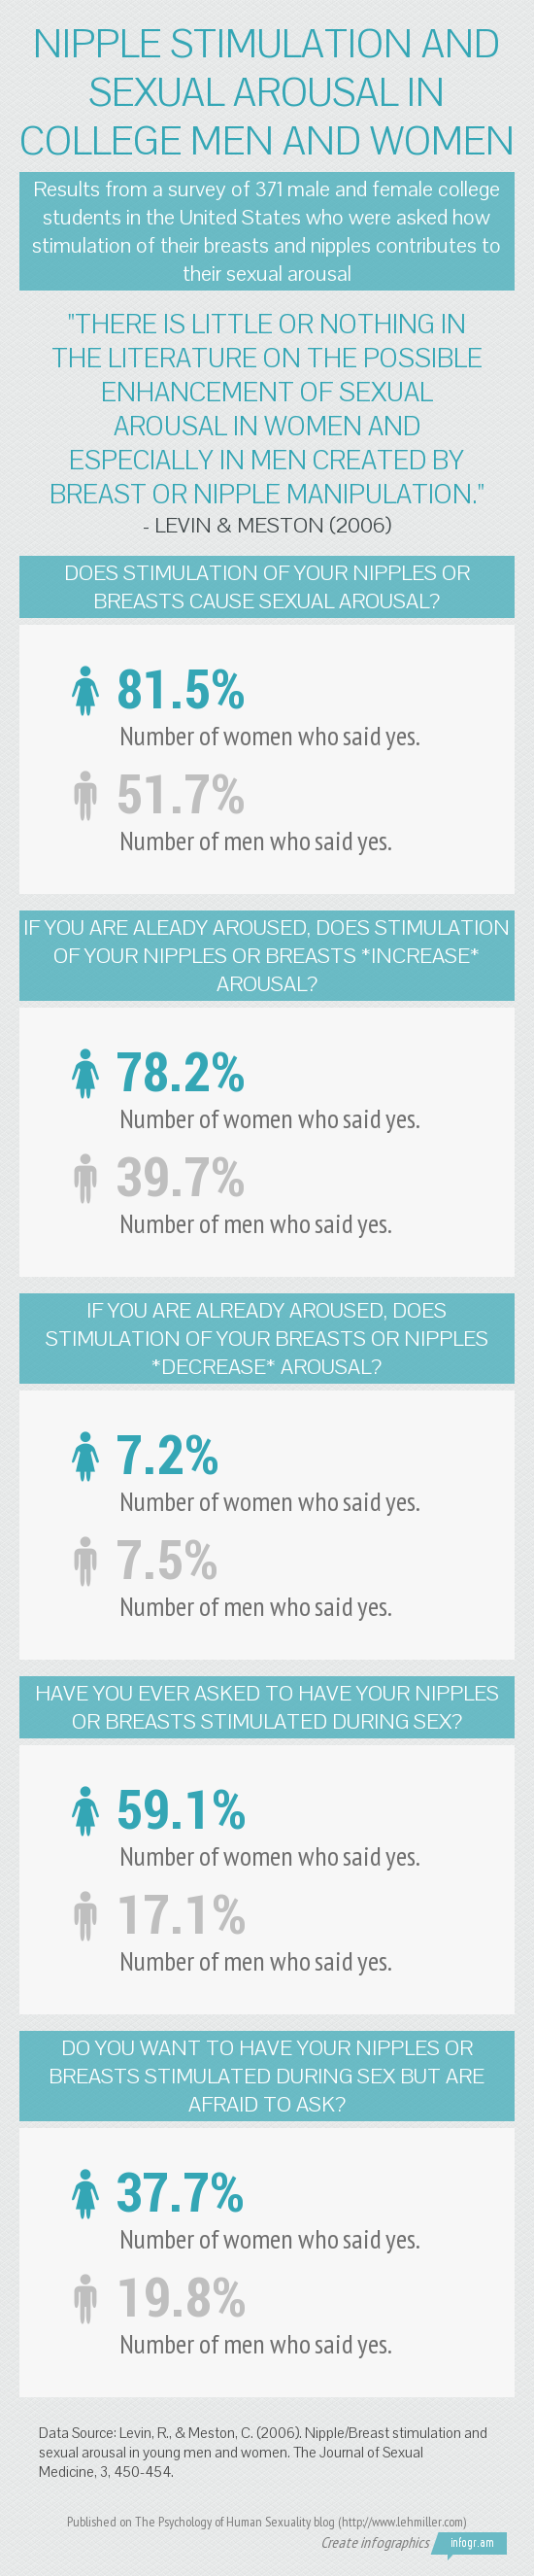 Infographic with data on how college men and women feel about breast and nipple stimulation during sexual activity